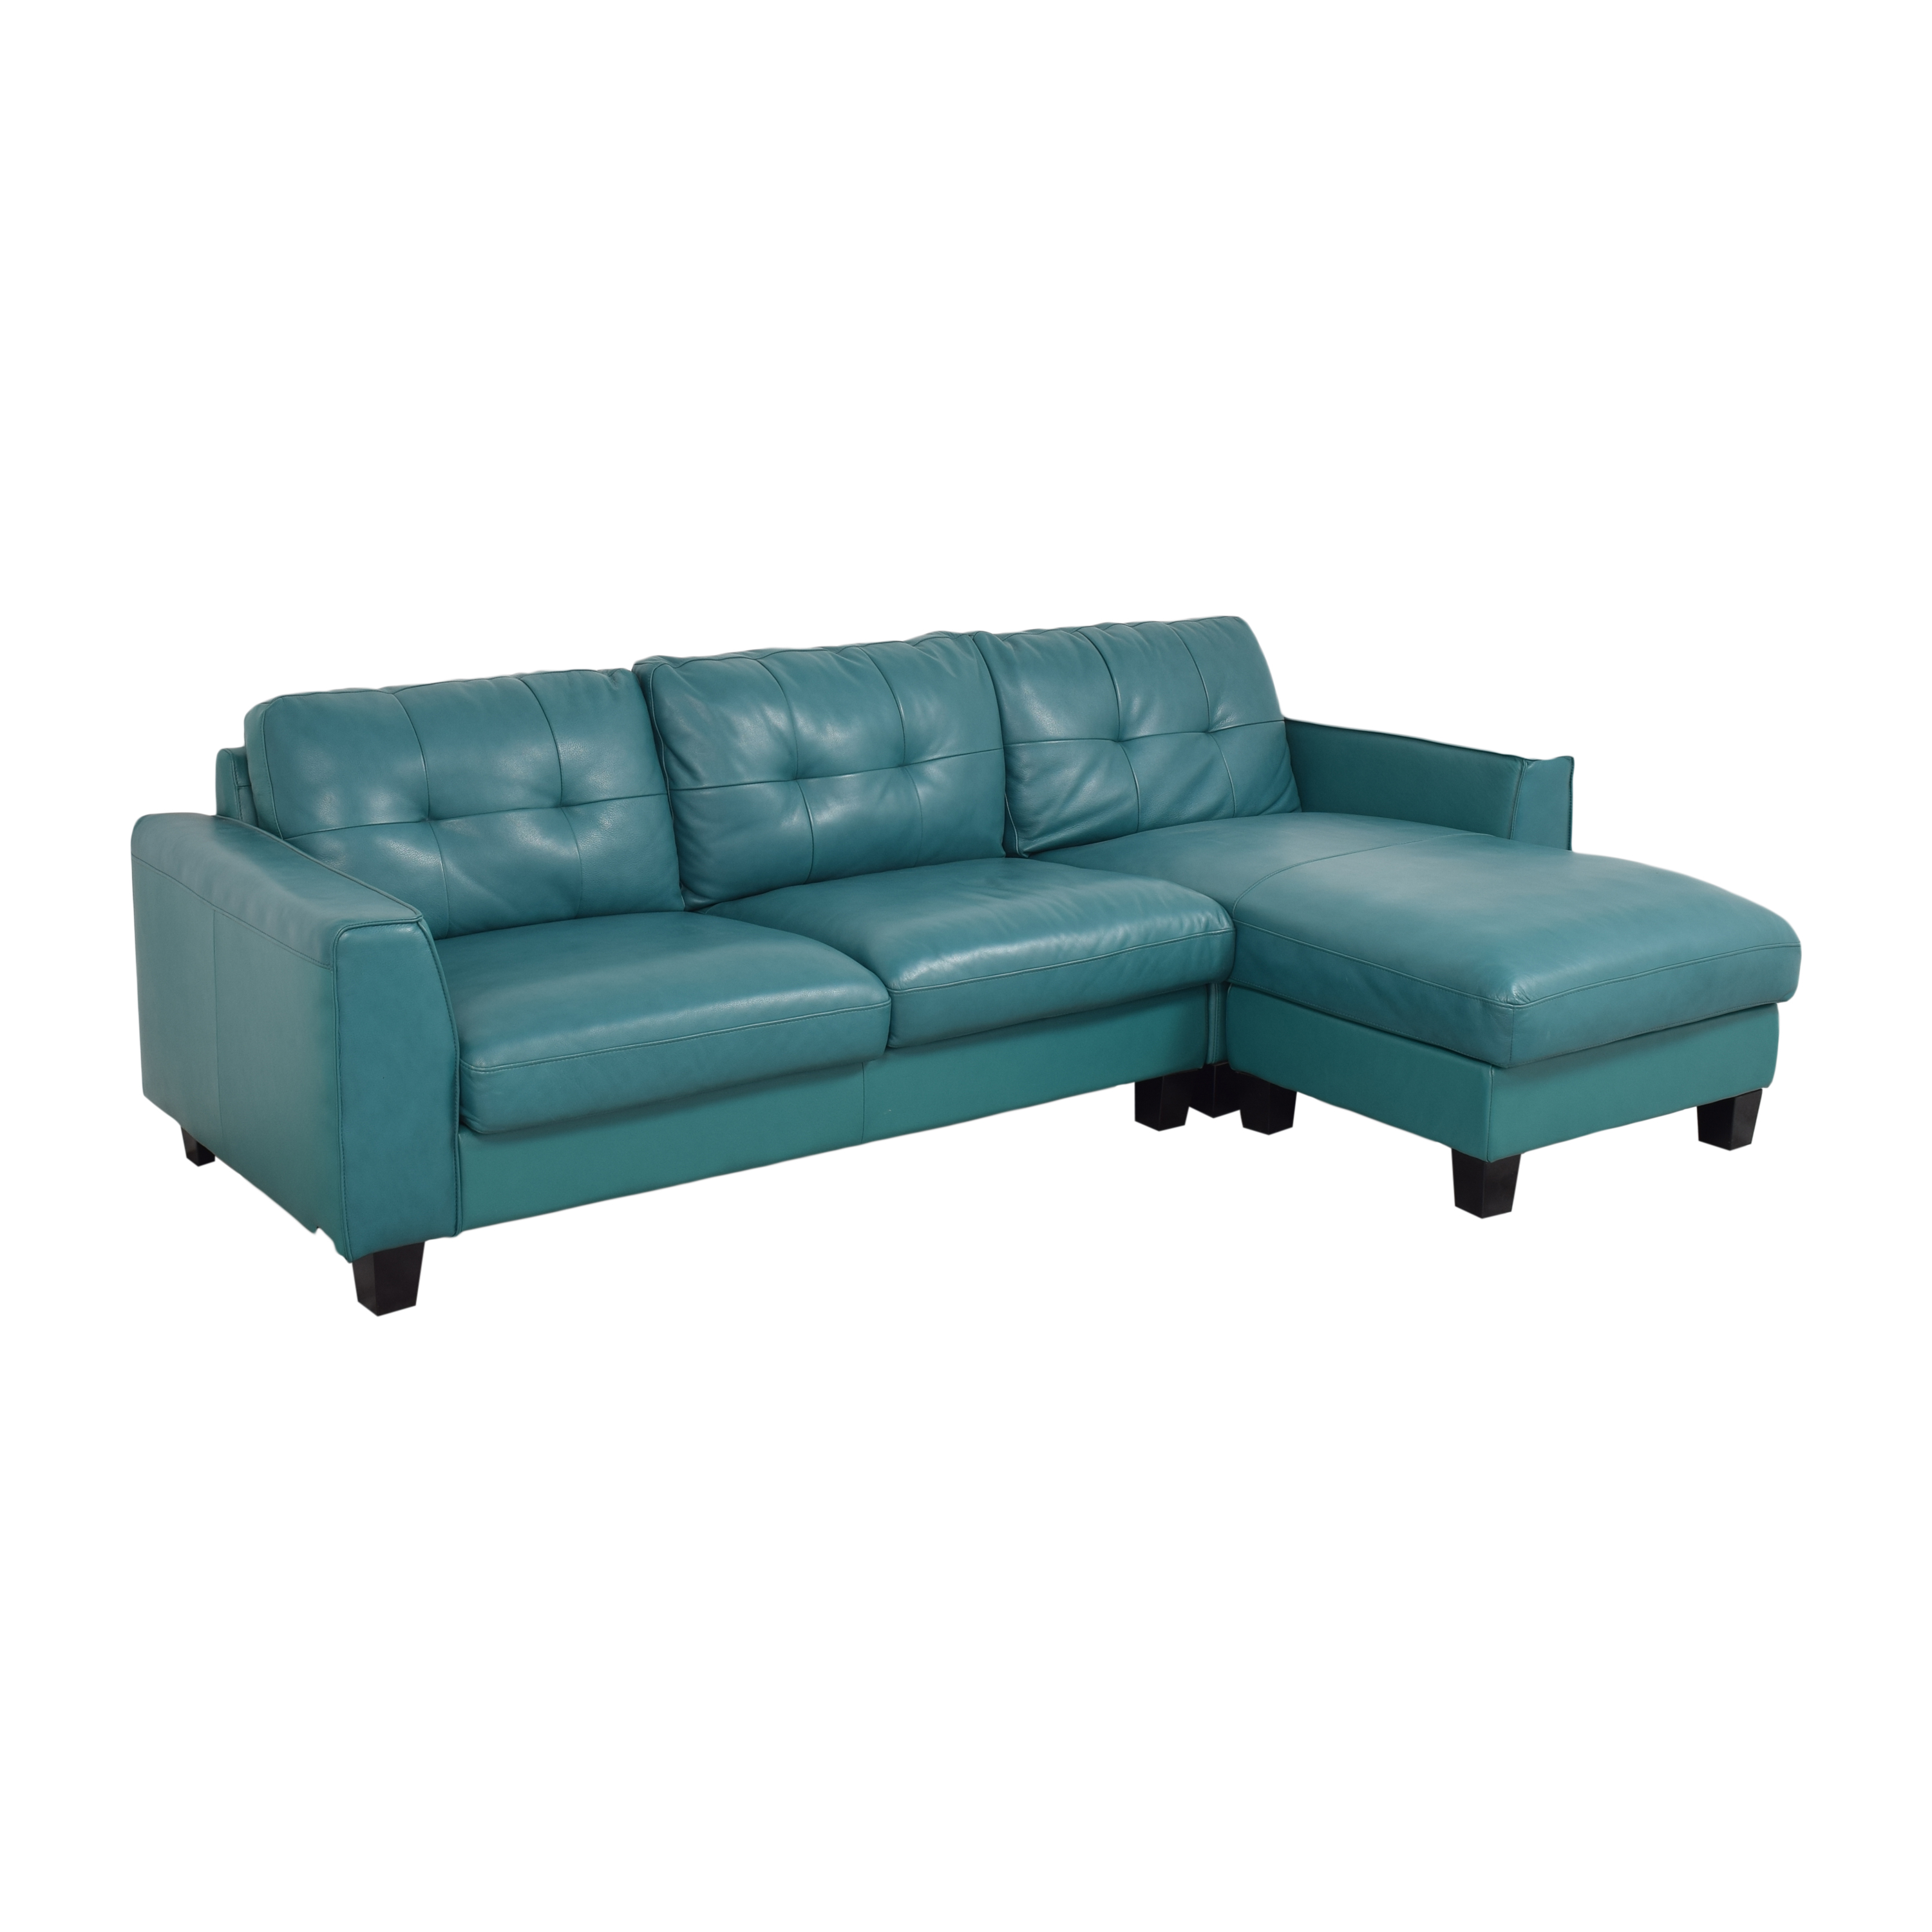 Costco Costco Sectional Sofa with Chaise Sectionals